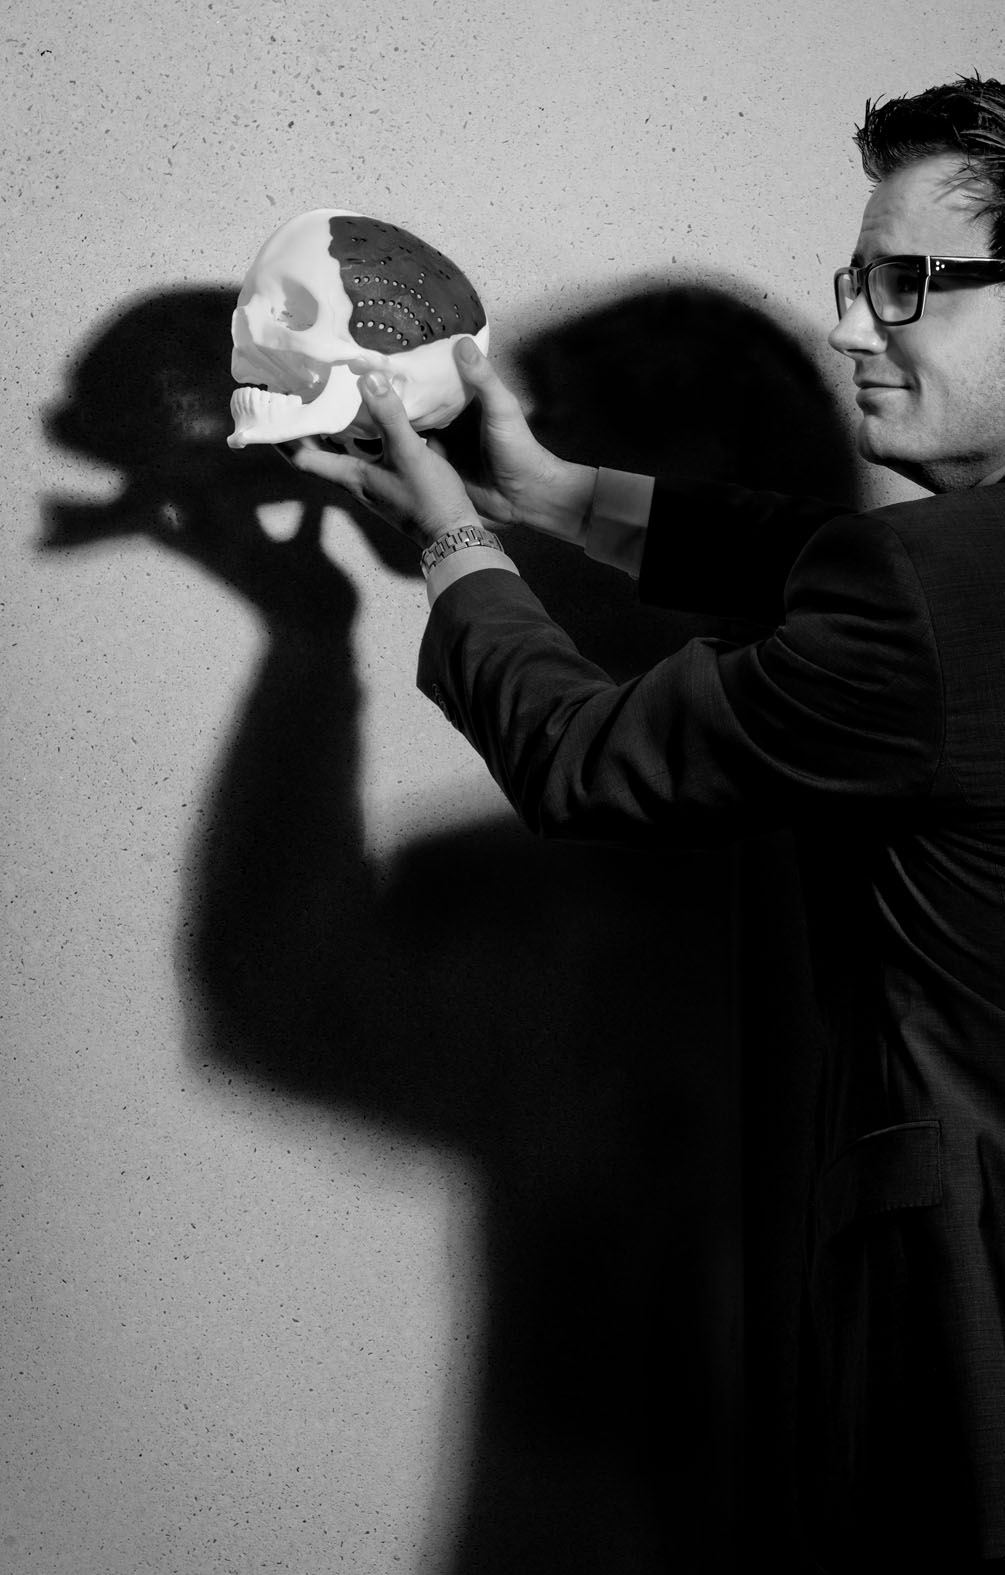 Maikel Beerens, Inventor personified skull implants - Project: Goed bedacht 2013/14